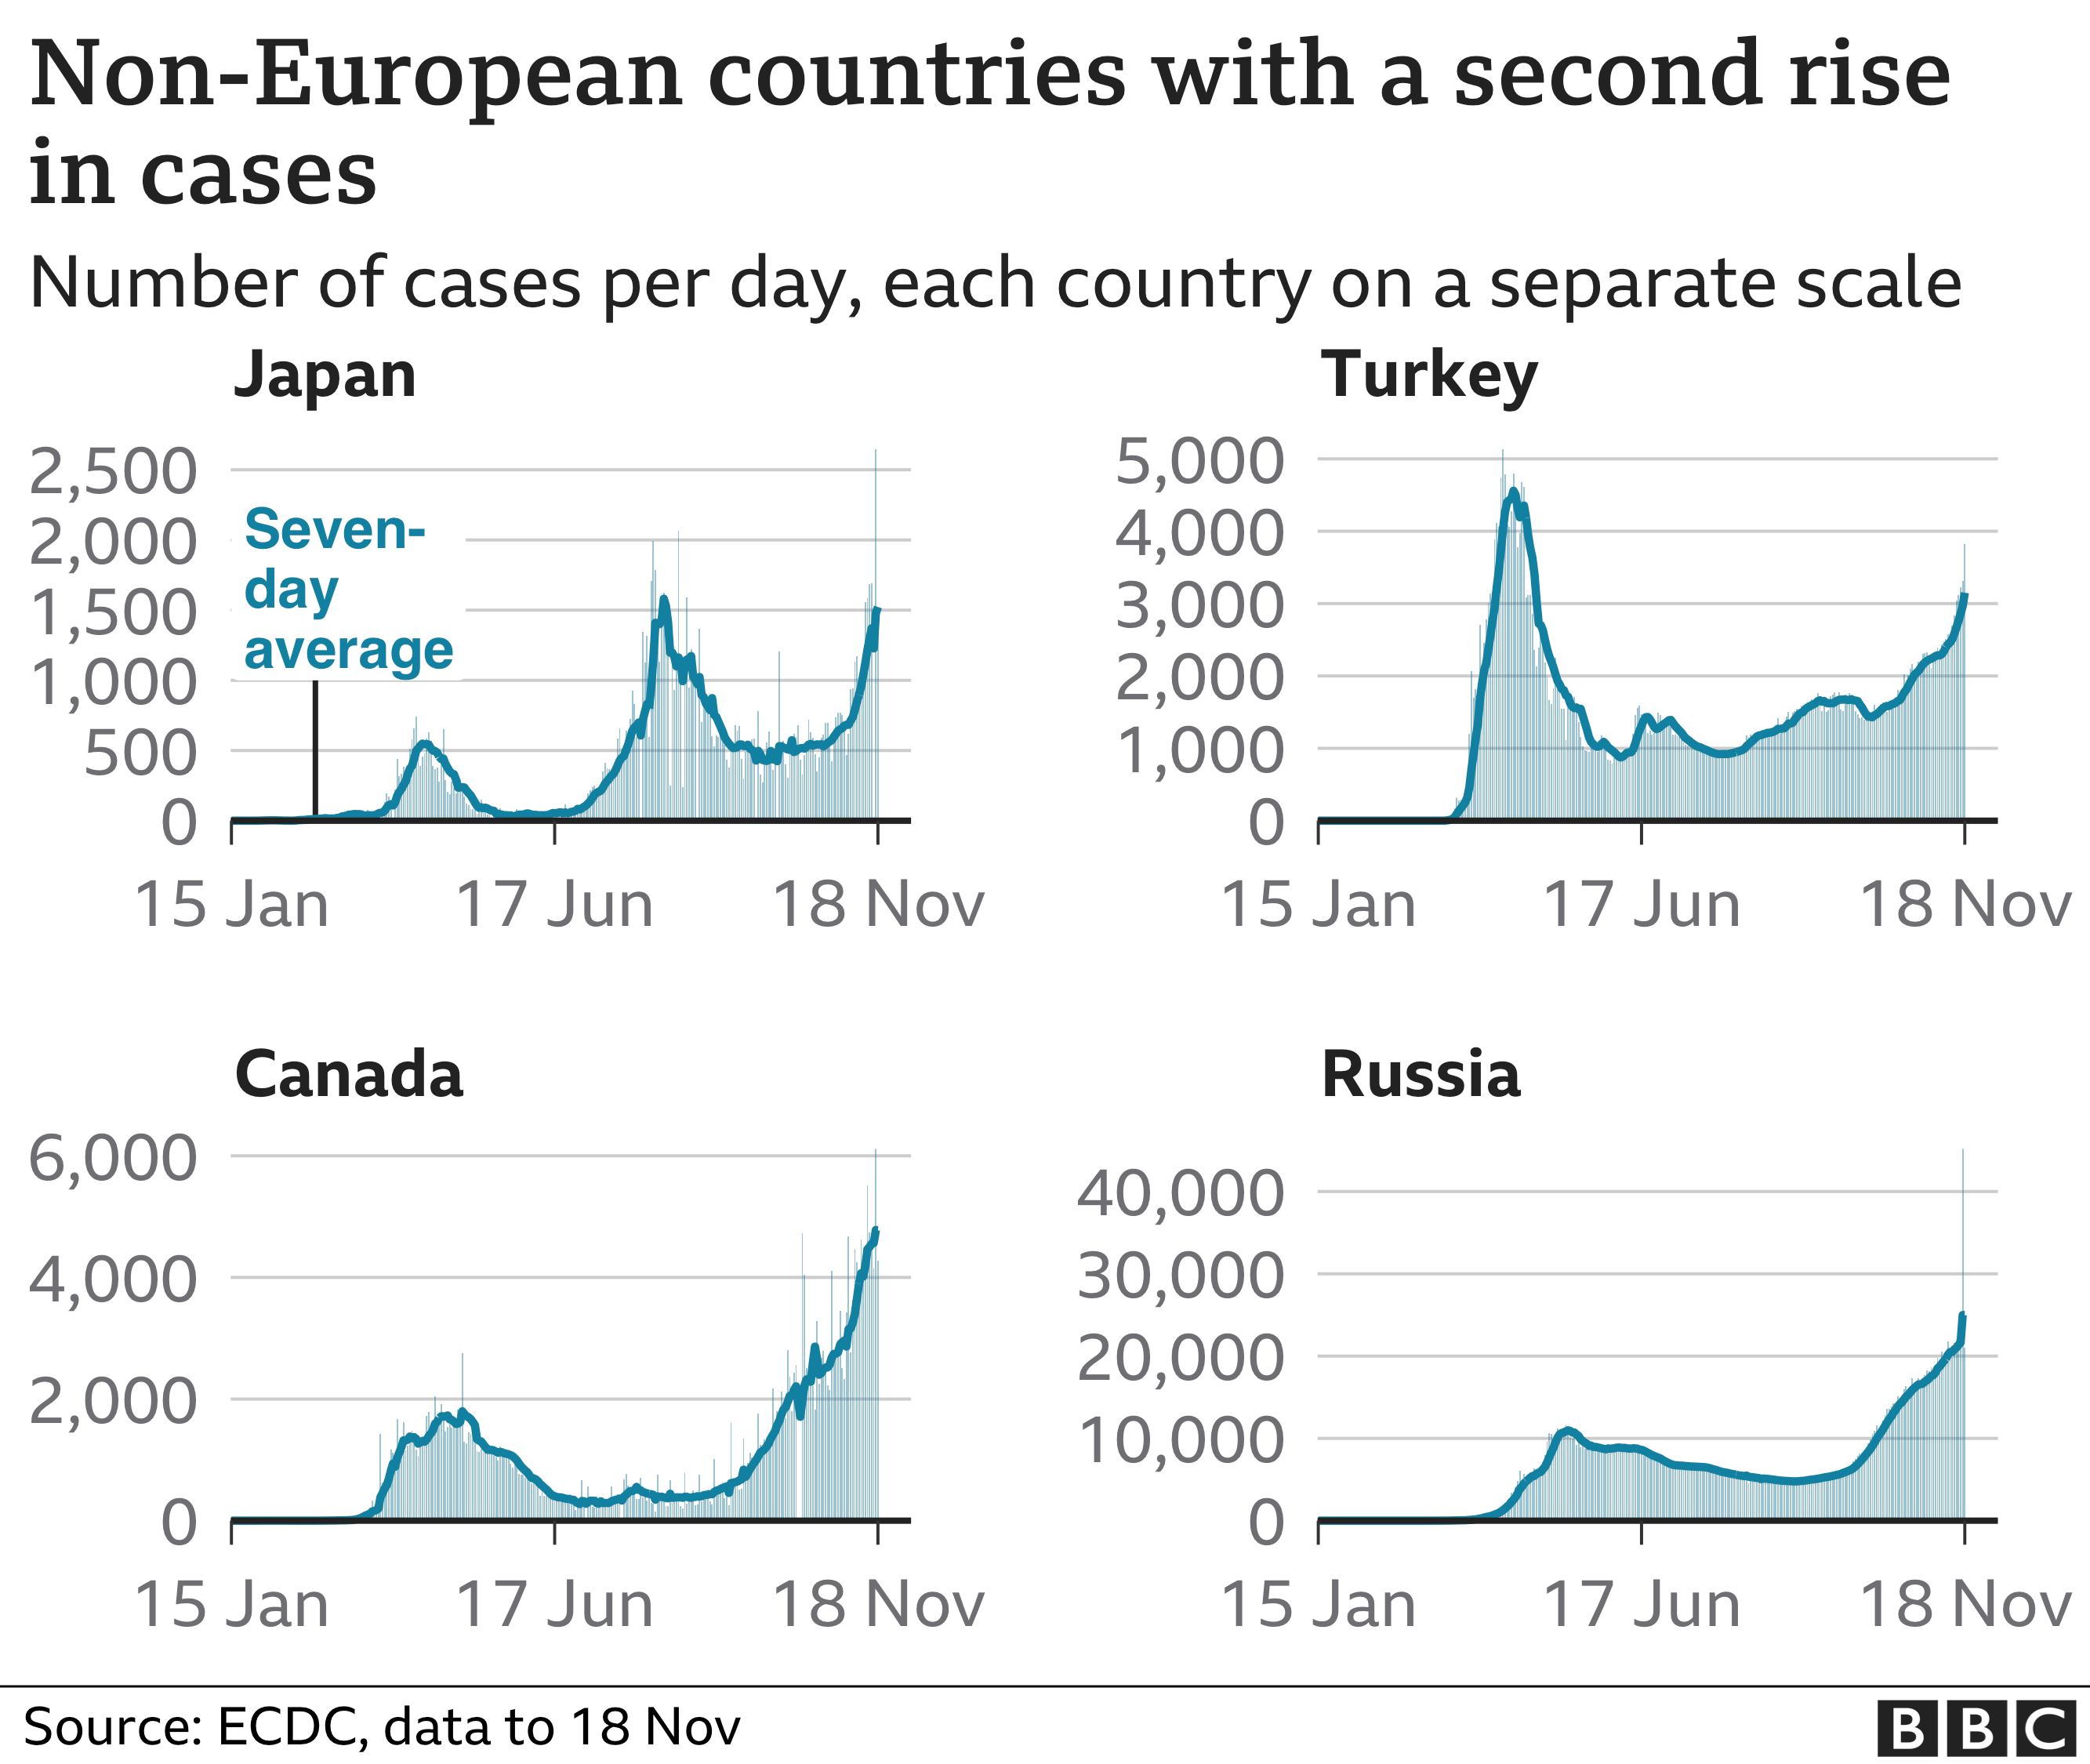 Chart shows countries experiencing a second rise in cases, Japan, turkey, Canada, Russia, 19 Nov